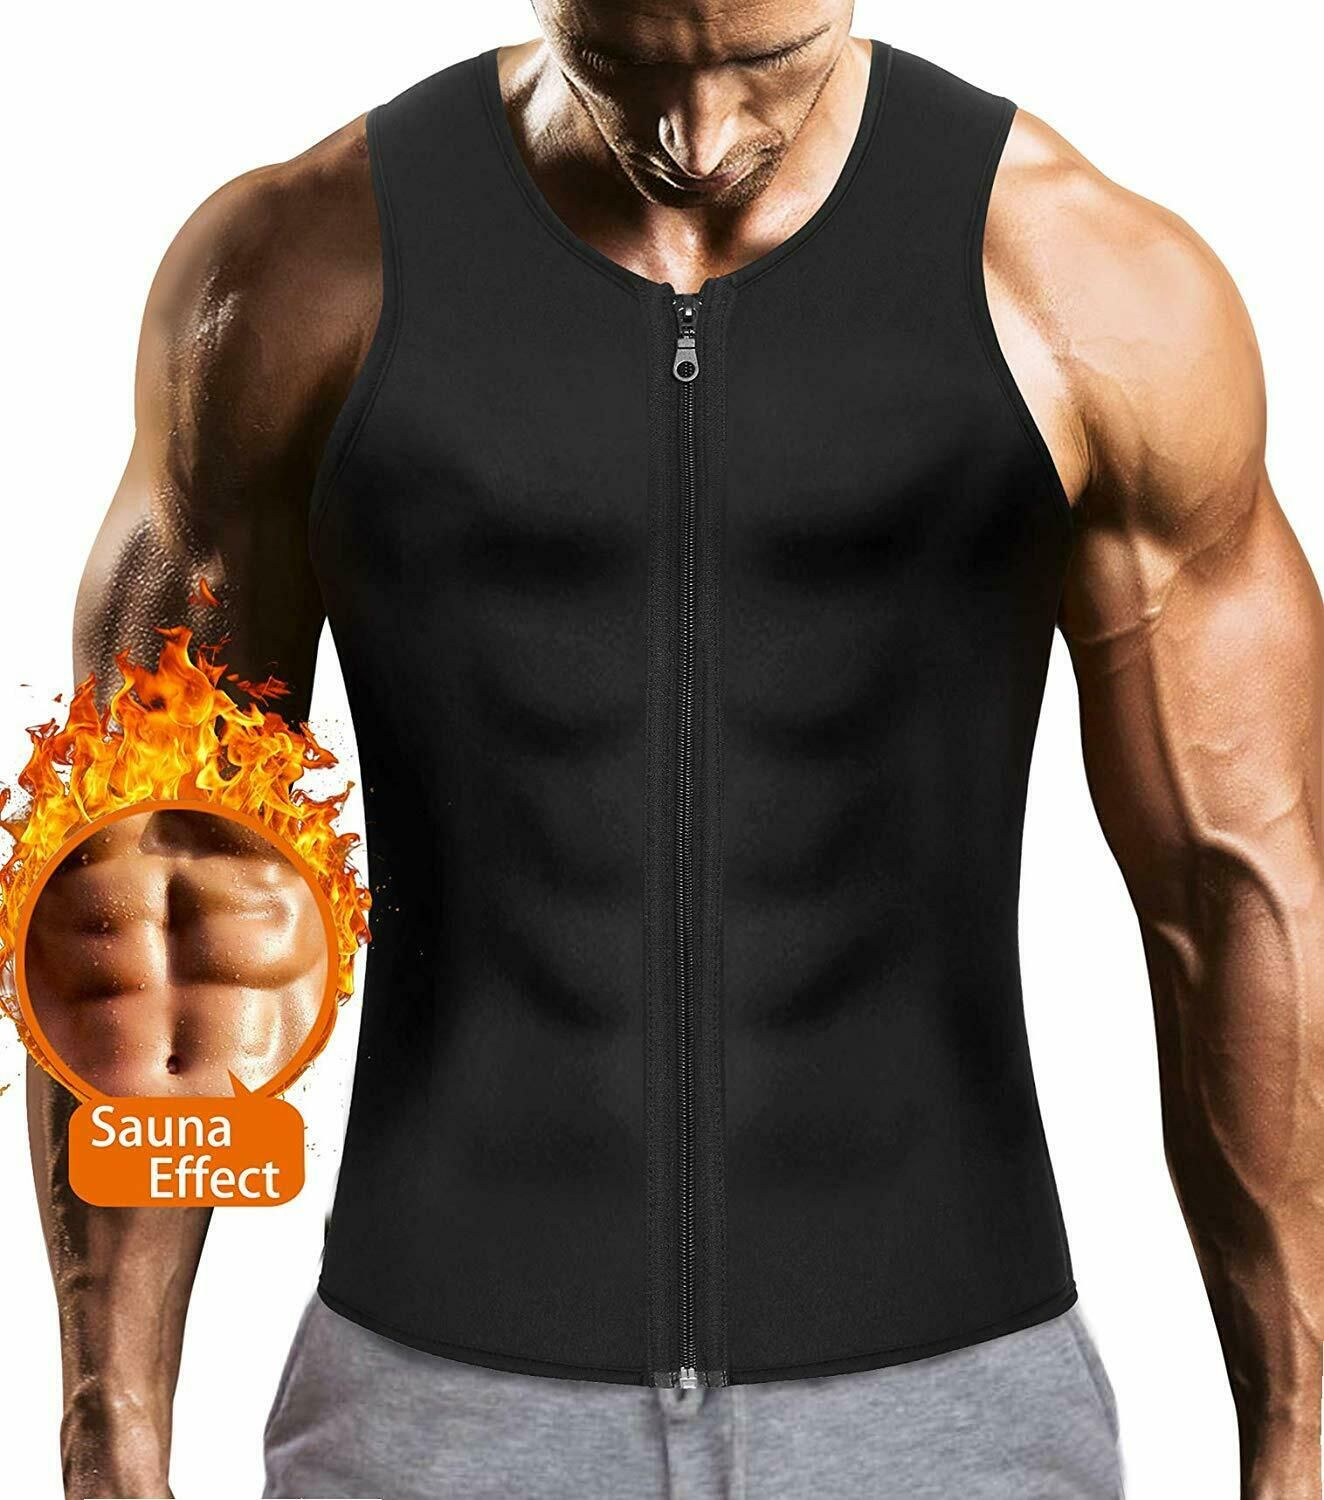 Men/'s Waist Trainer Vest for Weight Loss Sauna Hot Neoprene Body Shaper Tank Top